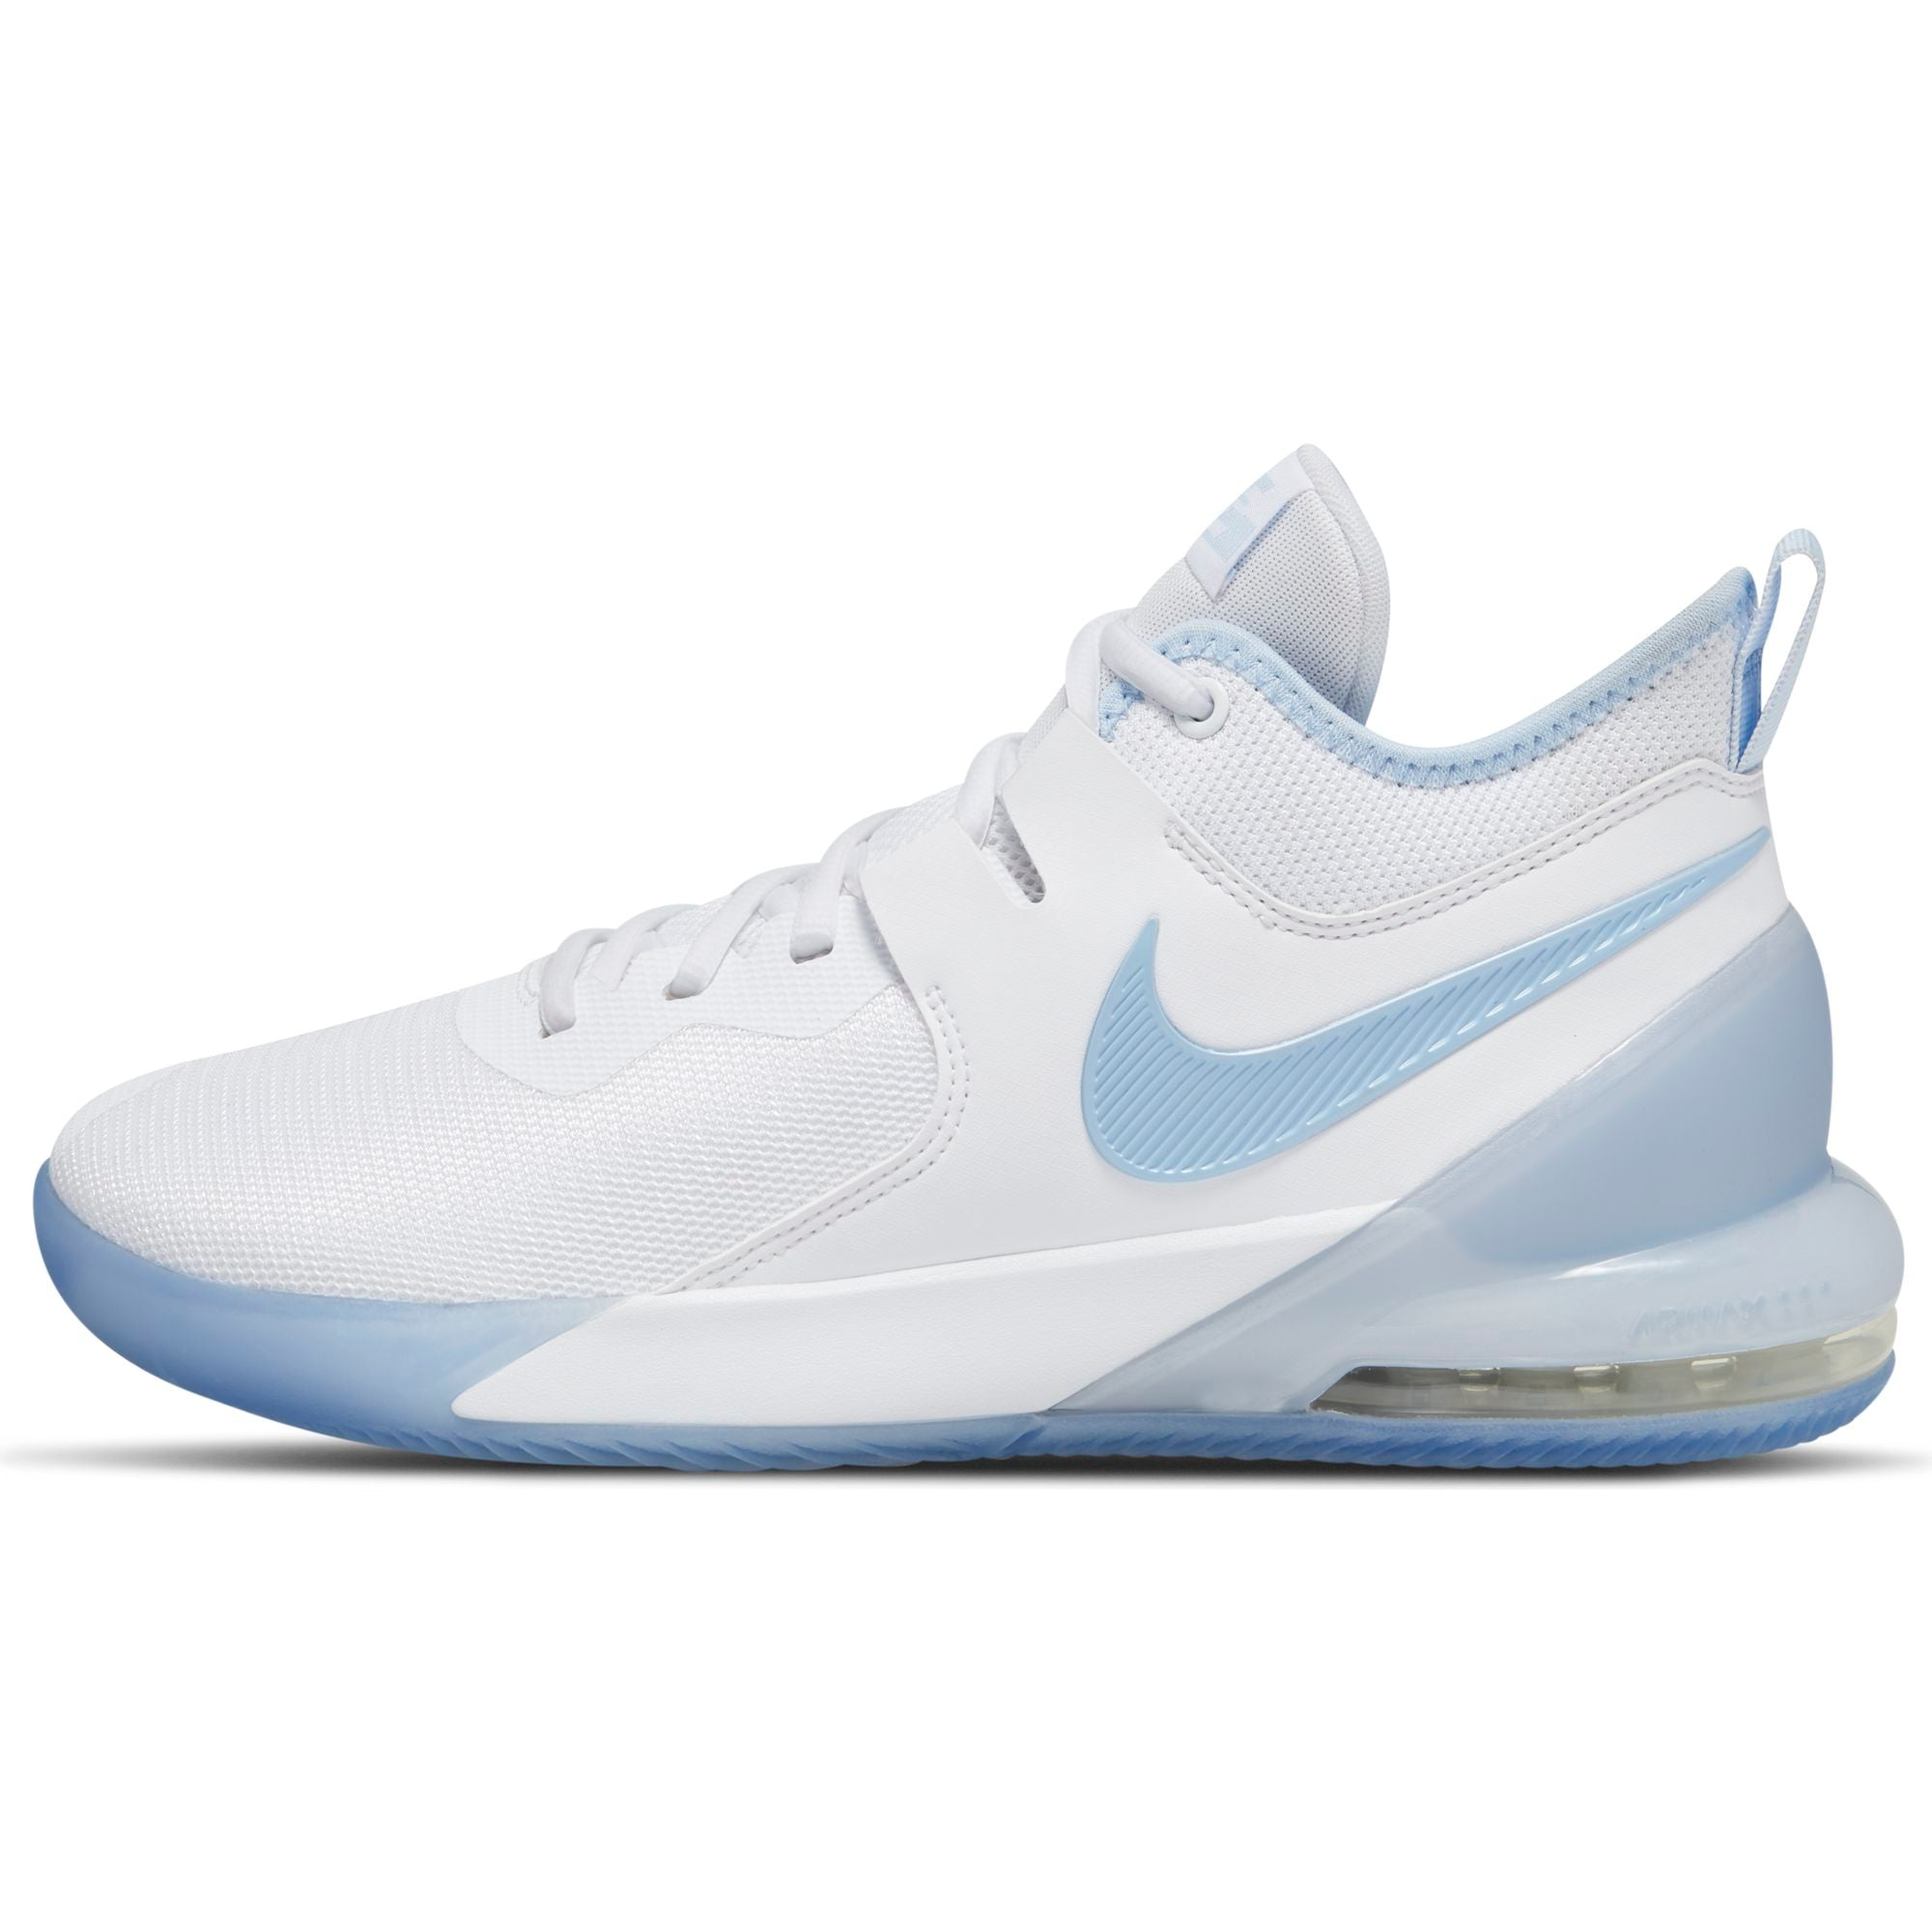 Nike Basketball Air Max Impact Basketball Boot/Shoe - White/Royal Tint/Clear NK-CI1396-100